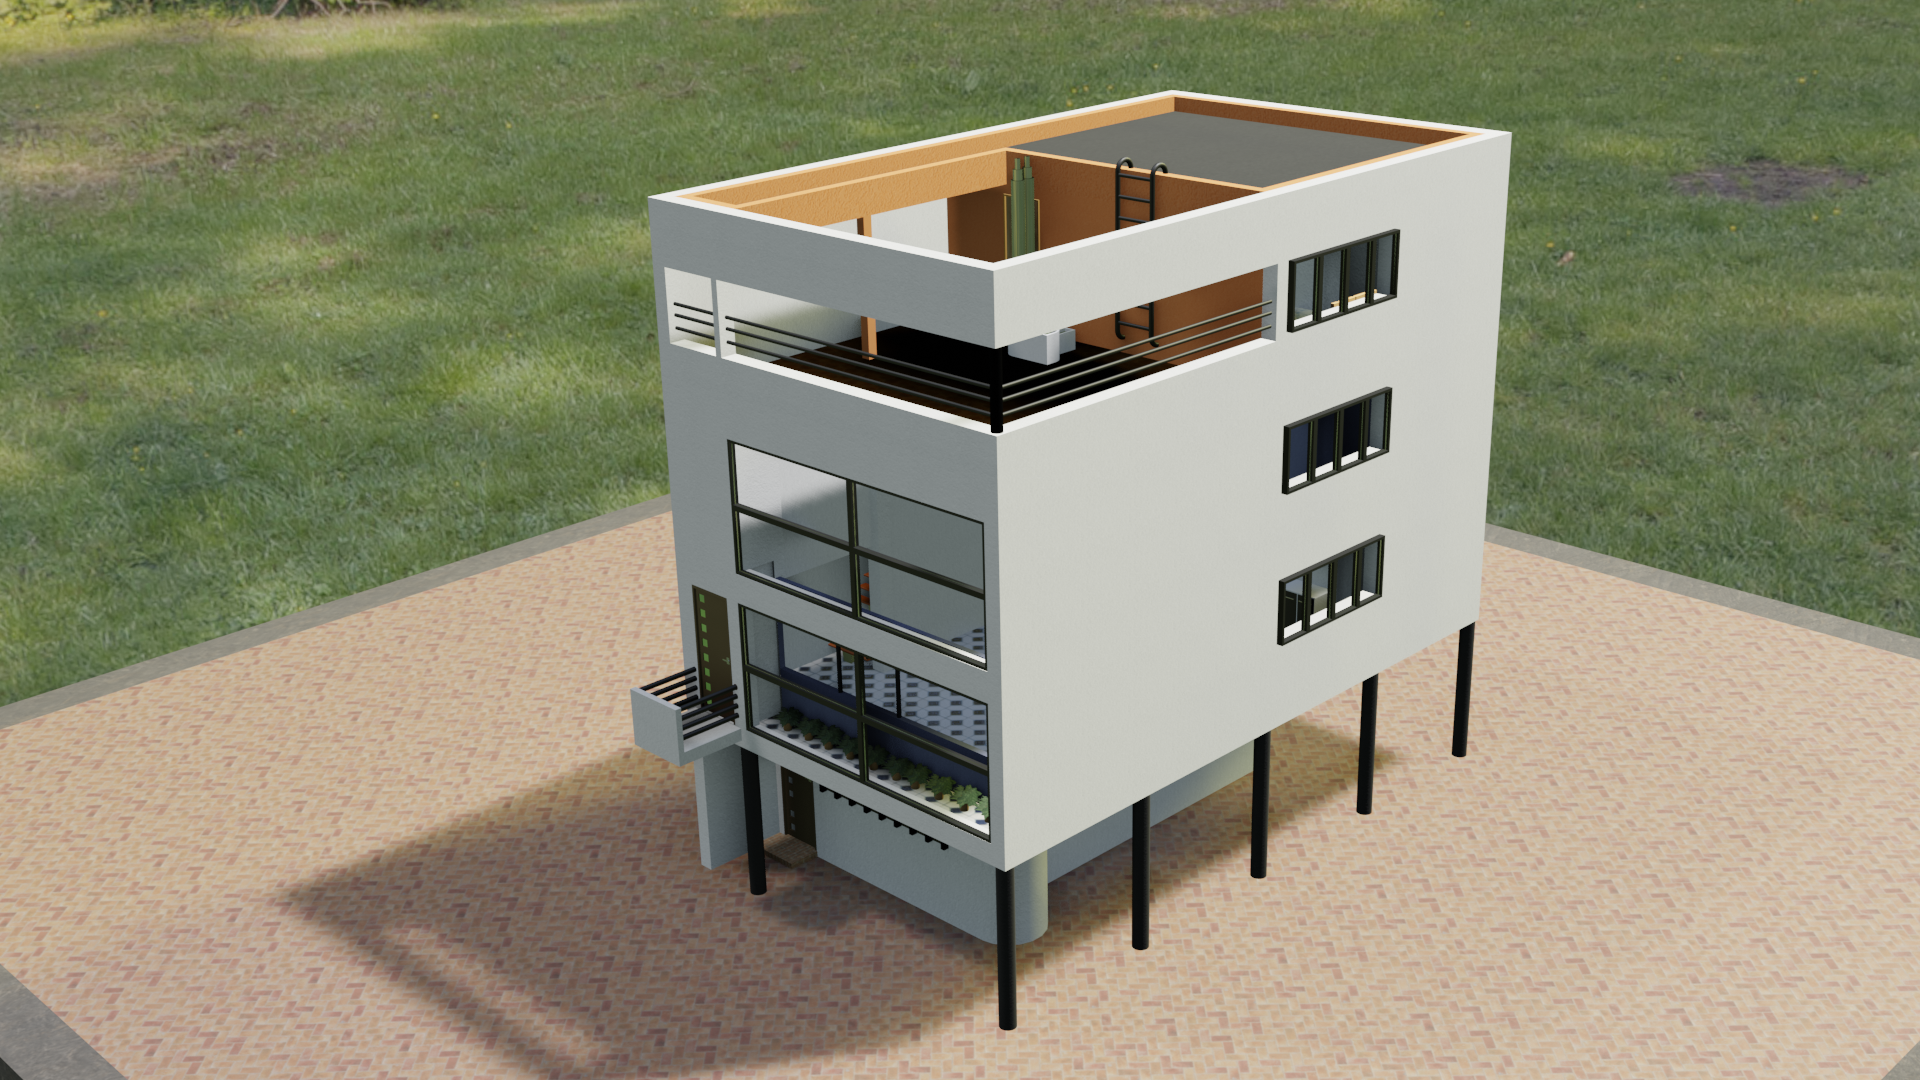 Citrohan house preview image 1